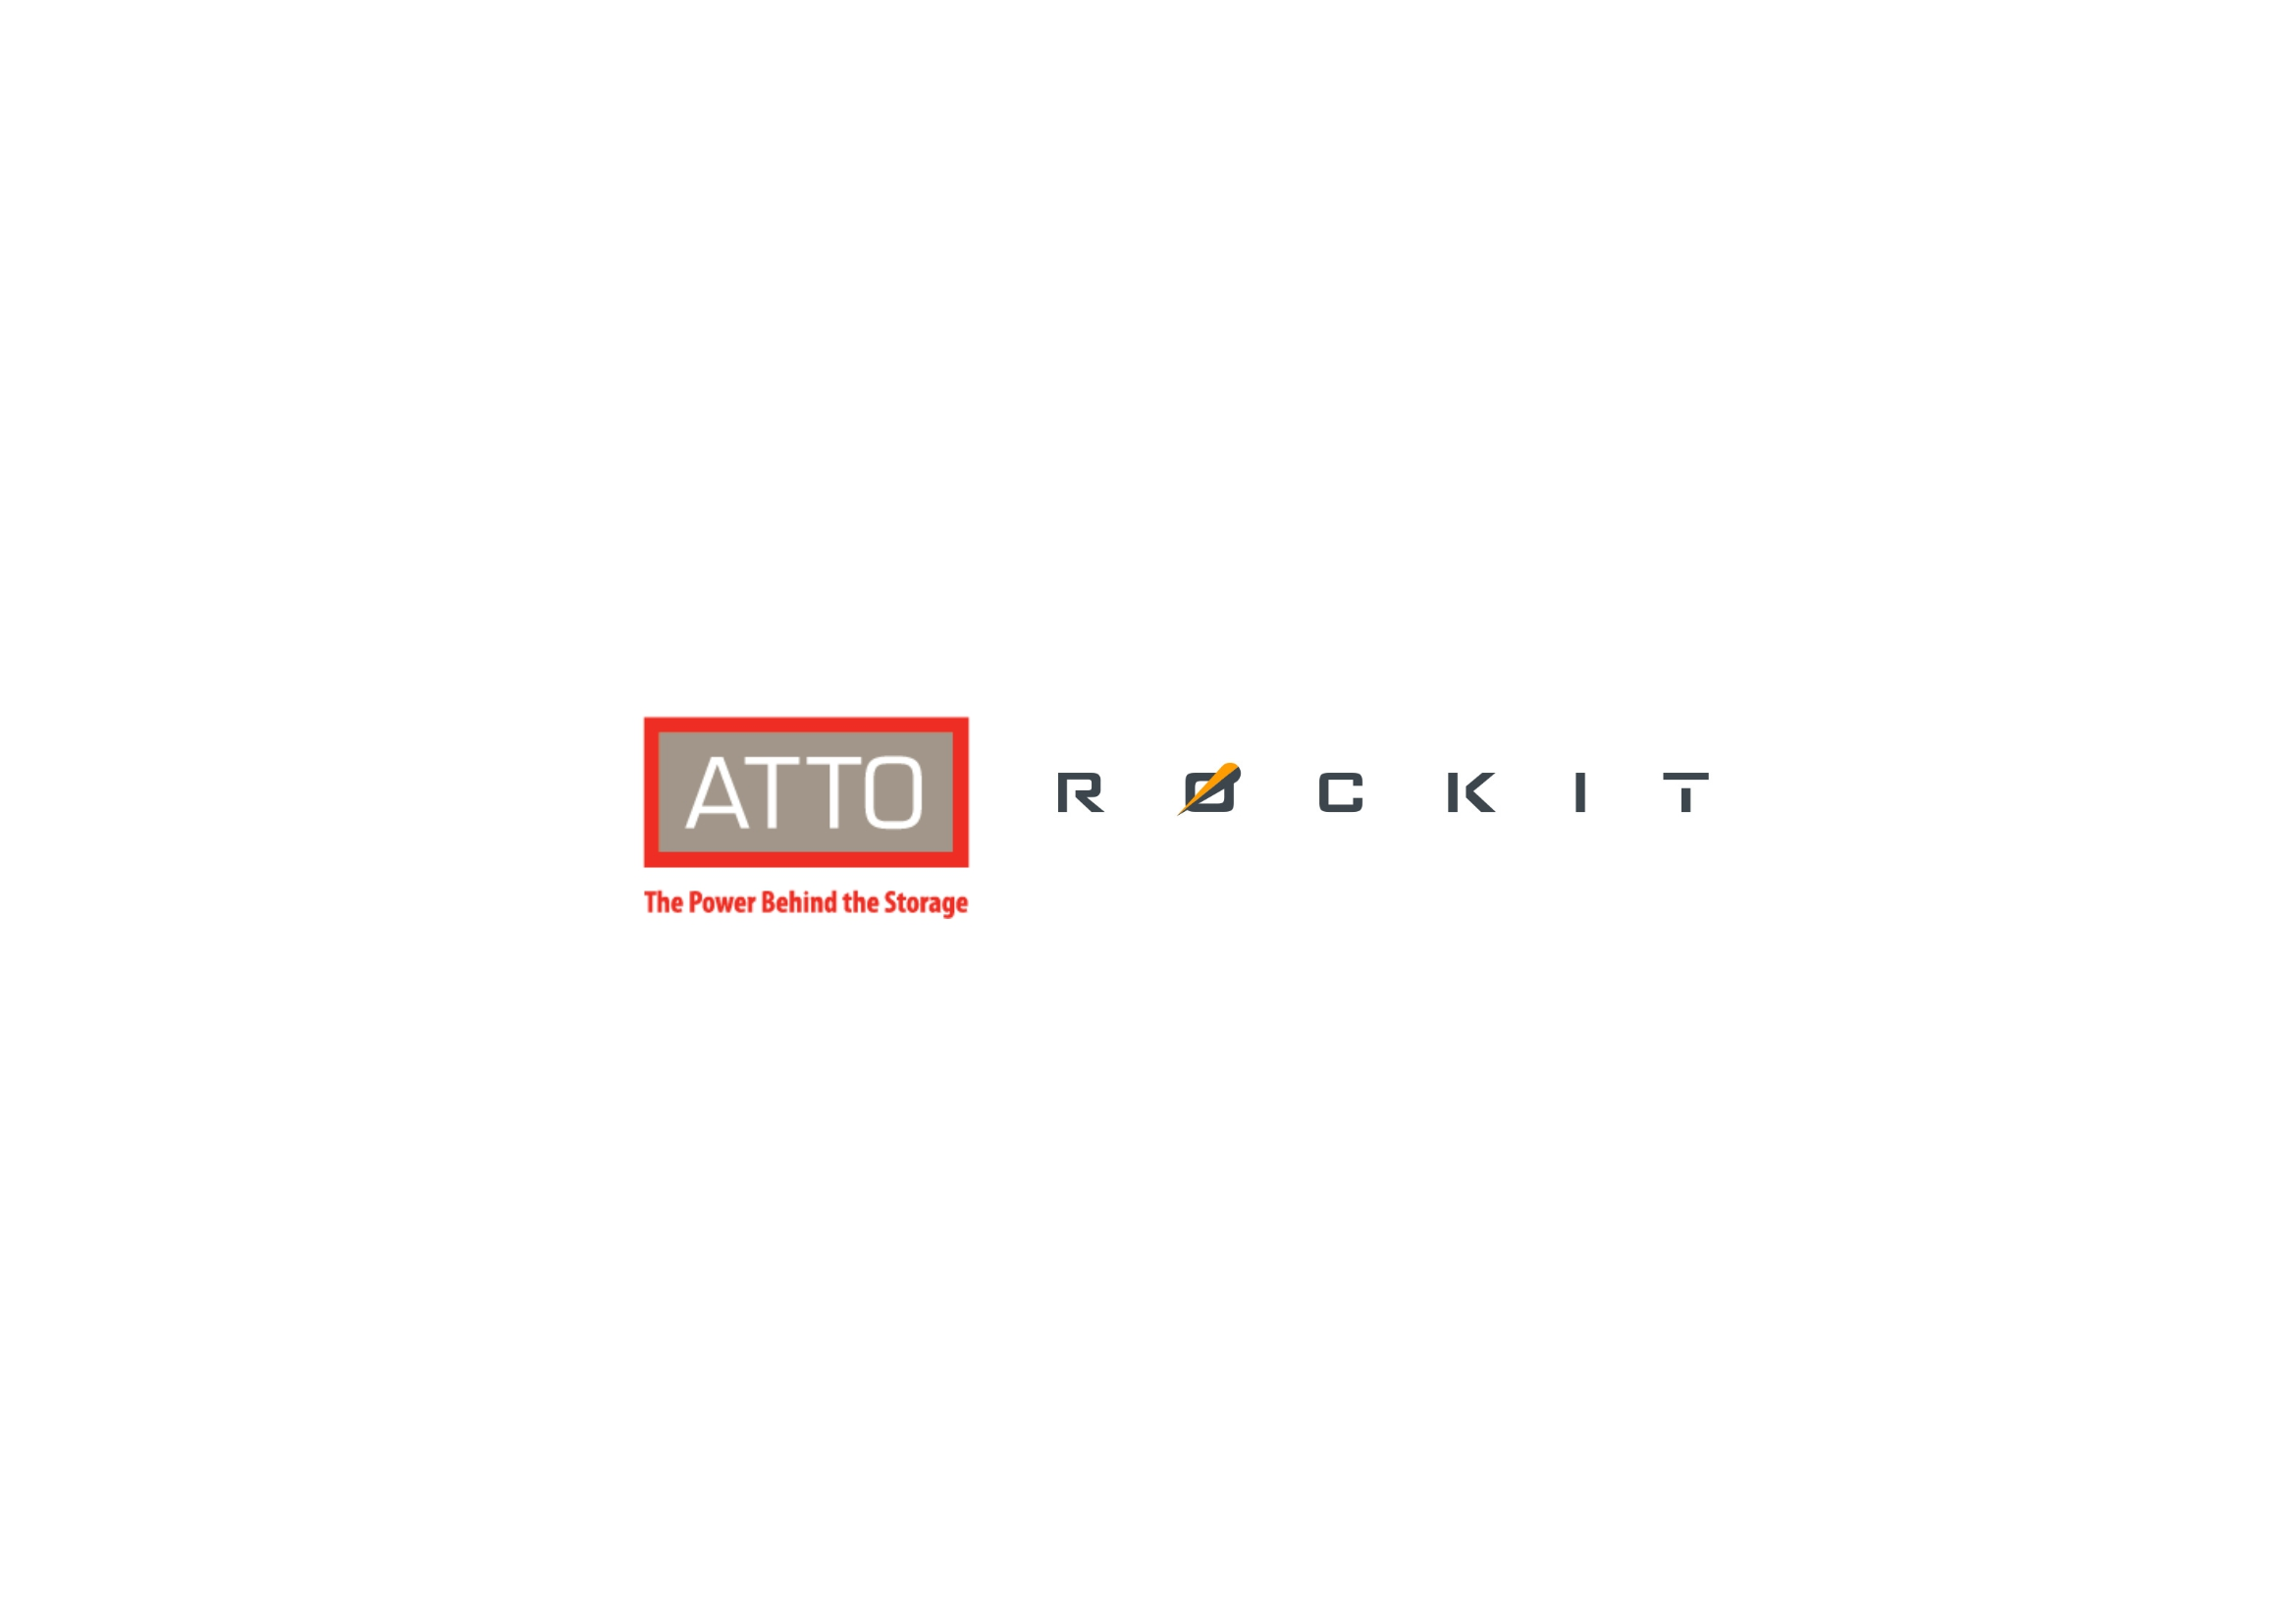 ATTO e Rockit Solution Brief